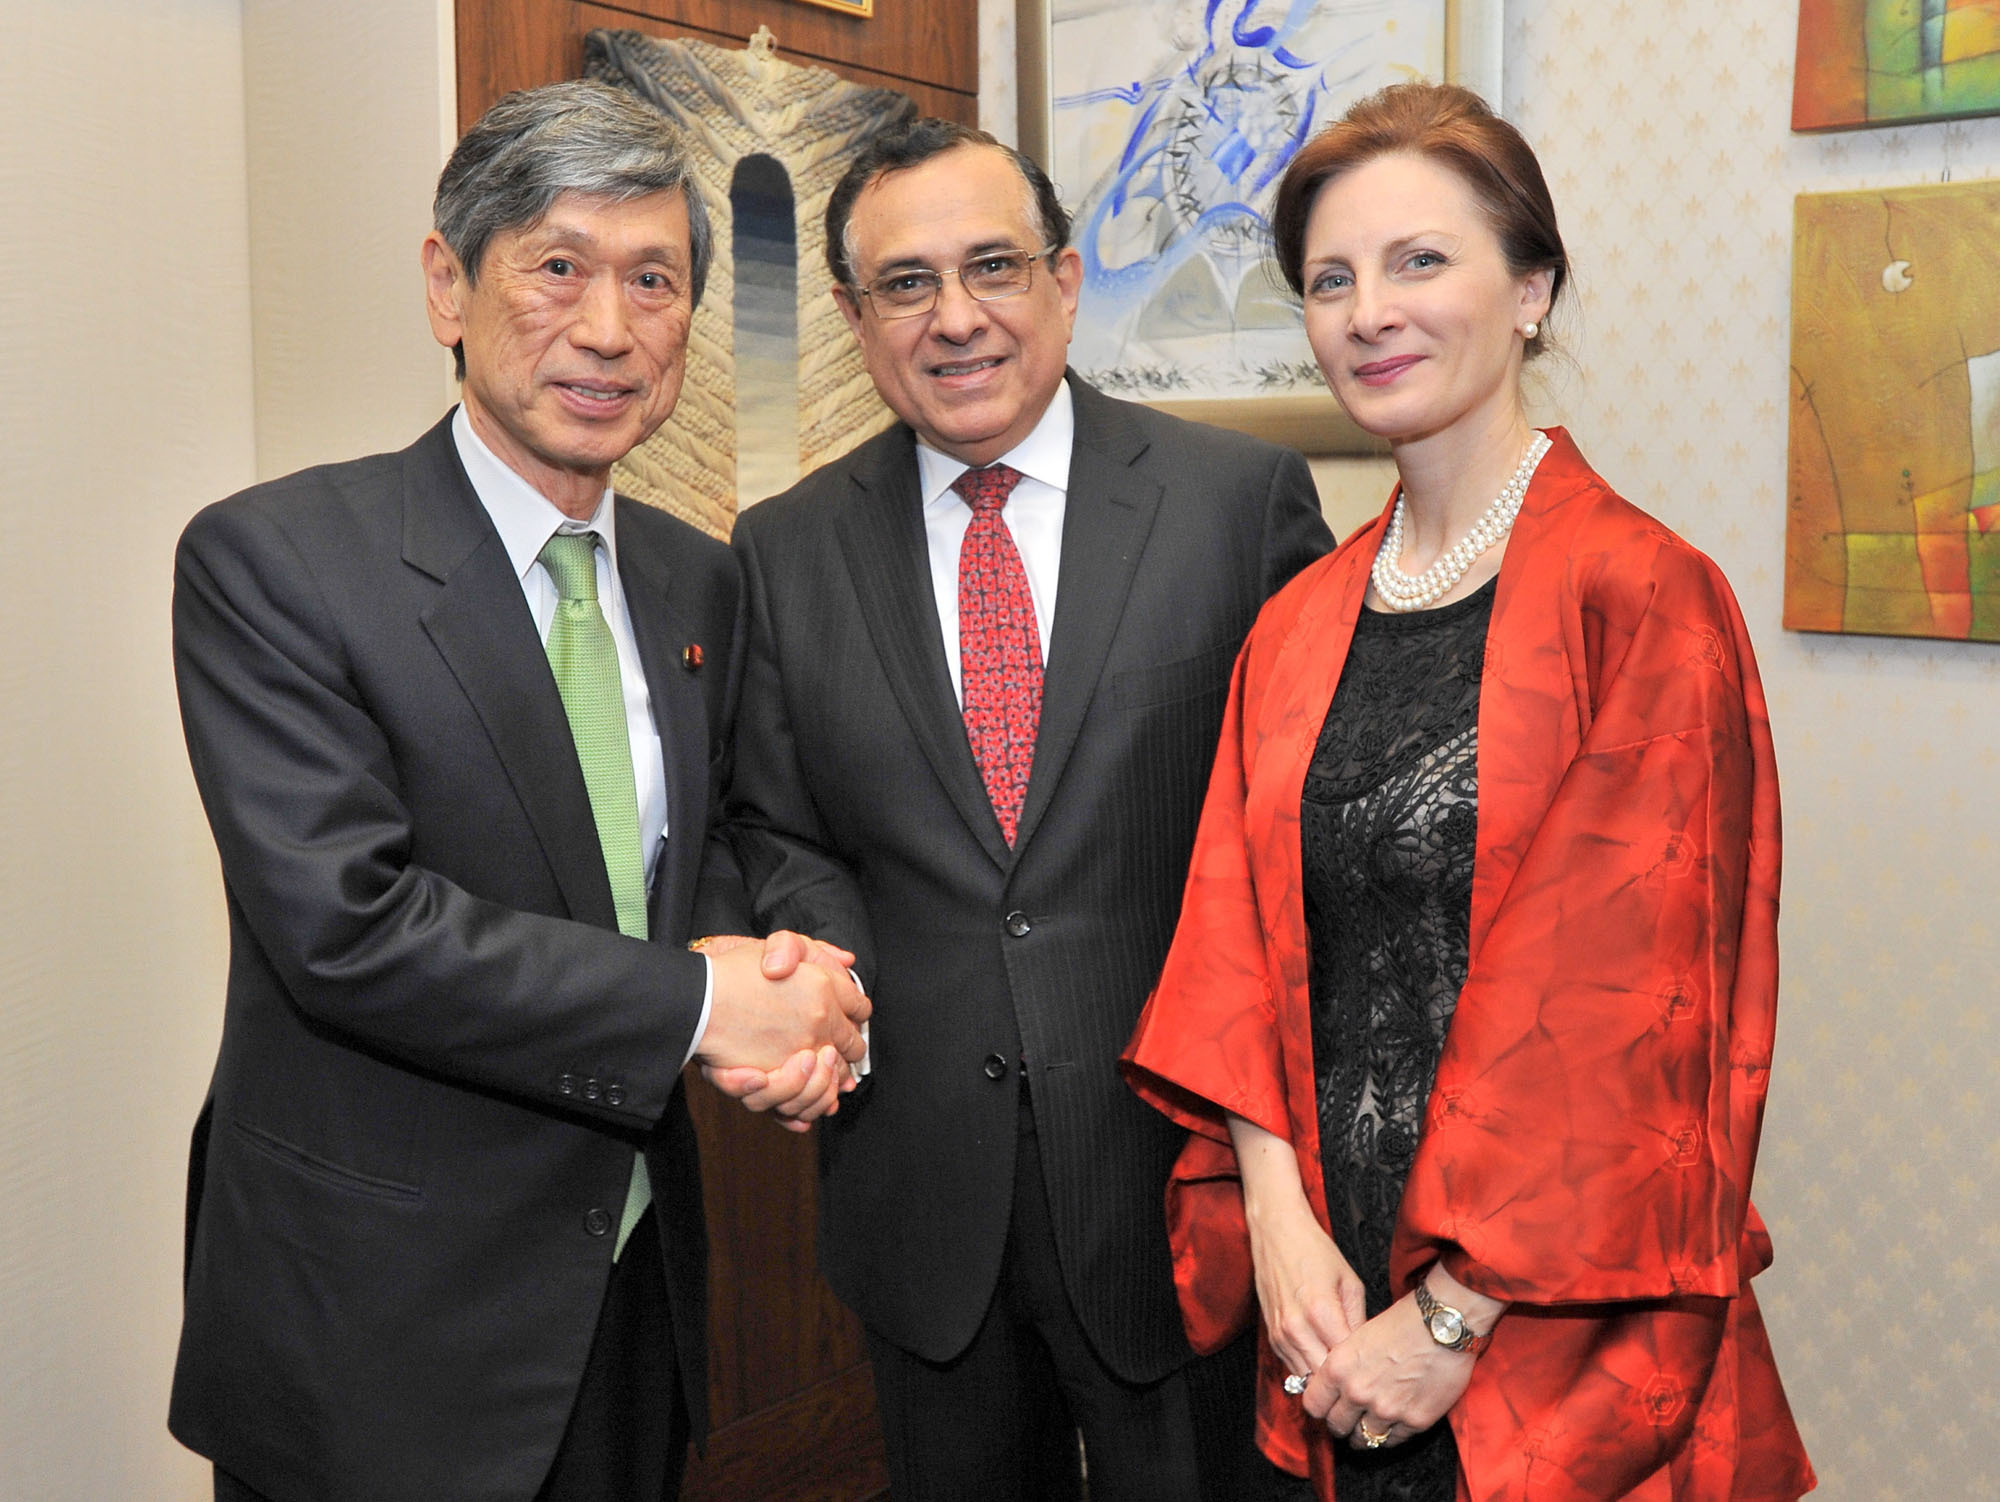 Peru's Ambassador Elard Escala (center) and his wife Cristina welcome Vice President of the Liberal Democratic Party and Chairman of the Japan-Peru Parliamentary Friendship League Masahiko Komura during a farewell reception at the ambassador's residence in Tokyo on March 15. | YOSHIAKI MIURA